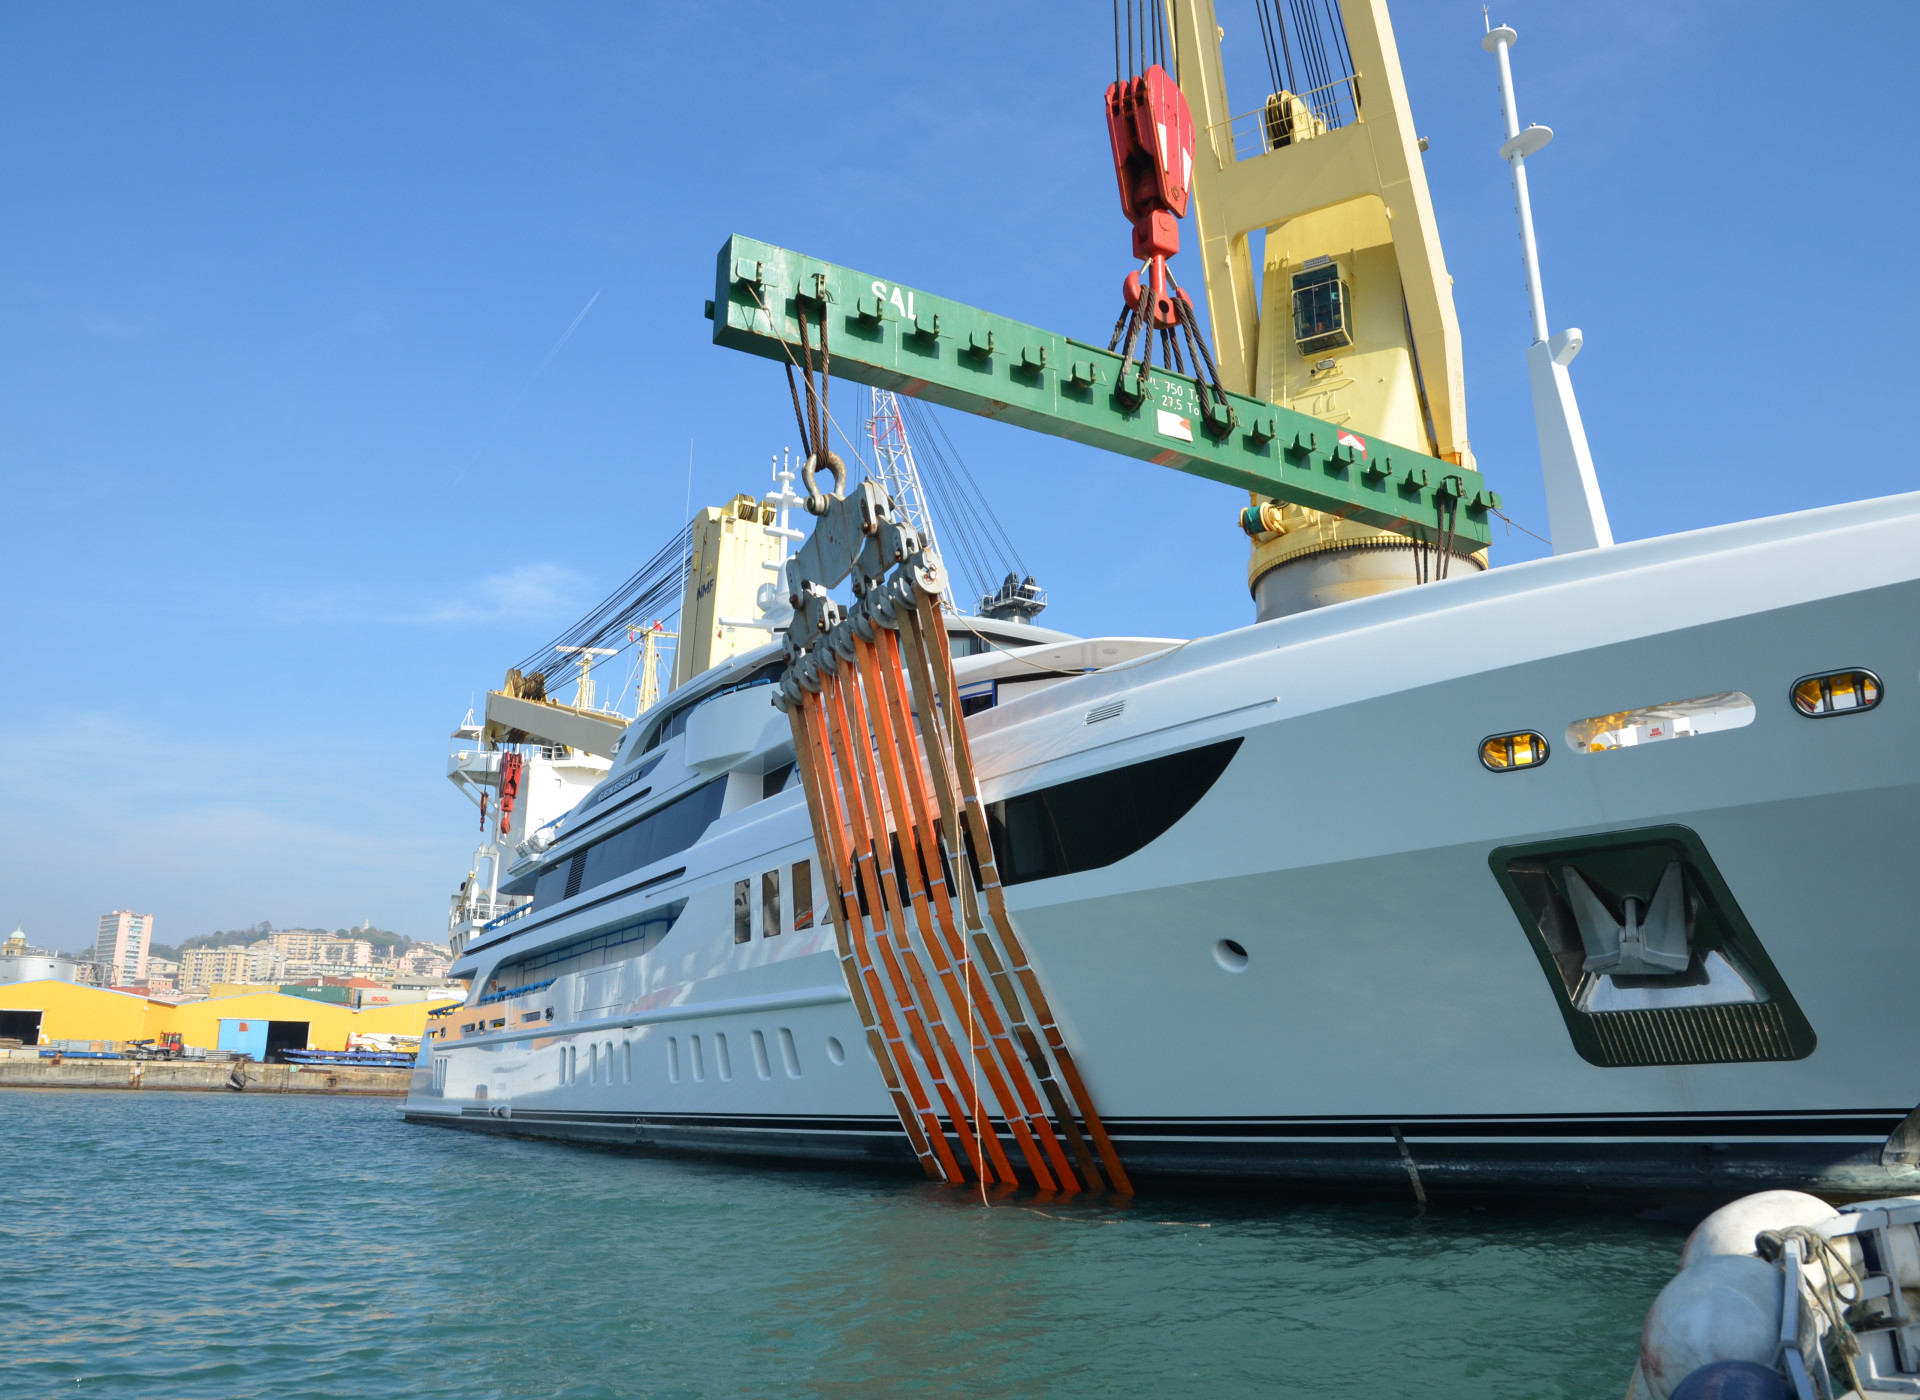 Superyacht transport background image